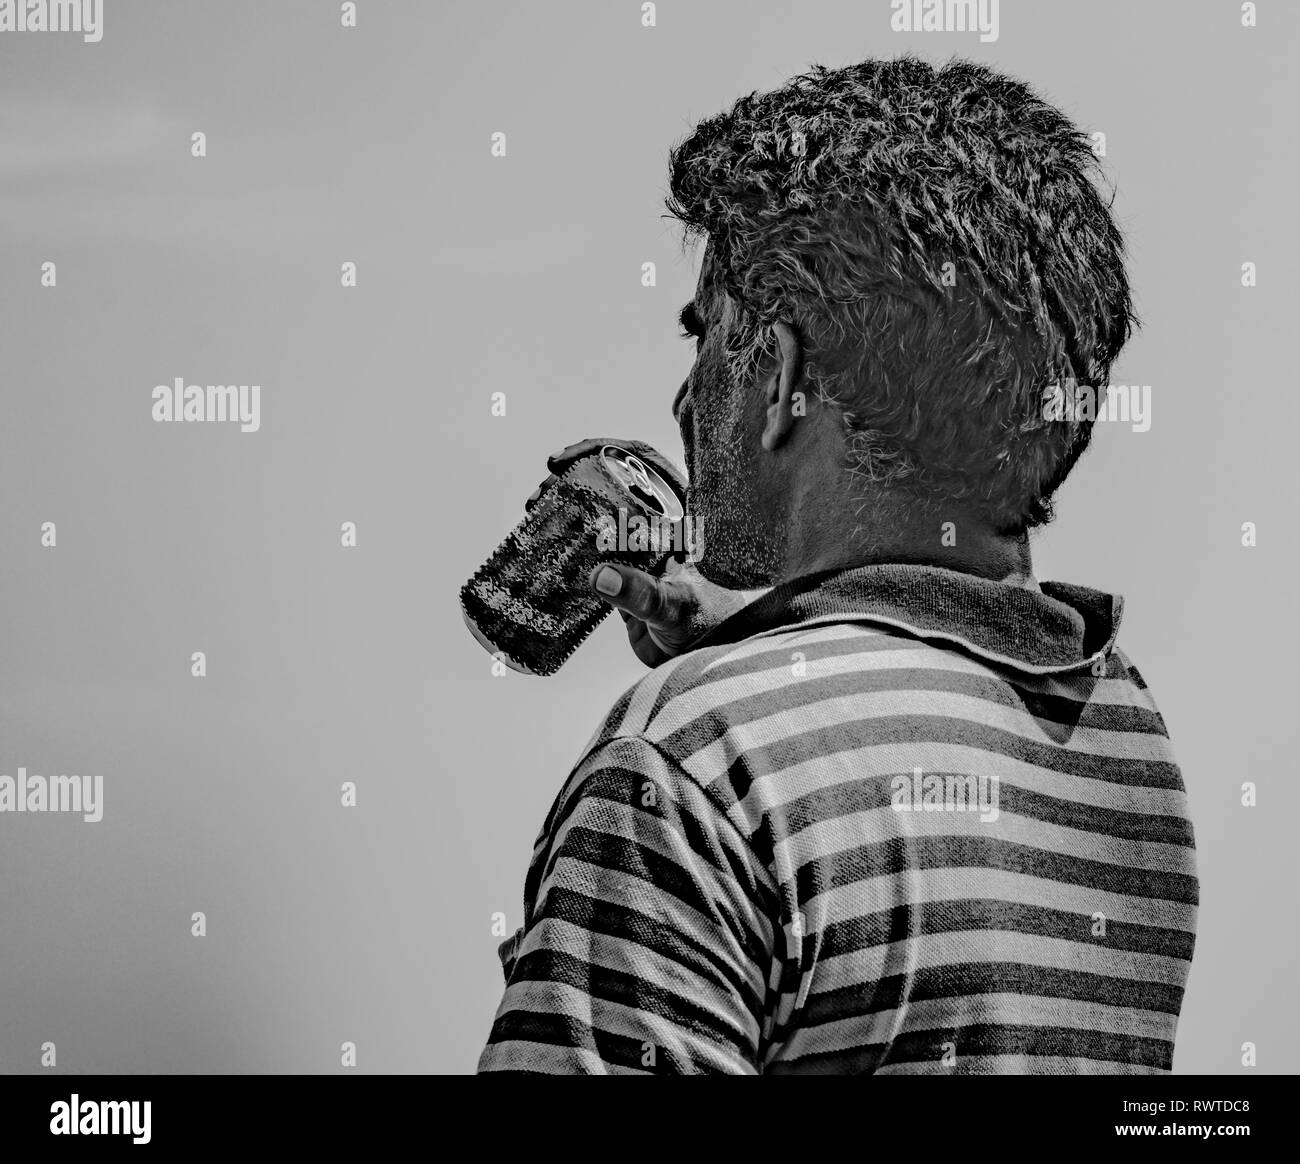 Black & White photo of middle aged man wearing striped tShirt and quenching thirst by drinking beer/cold drink from an aluminum can on hot sunny day - Stock Image